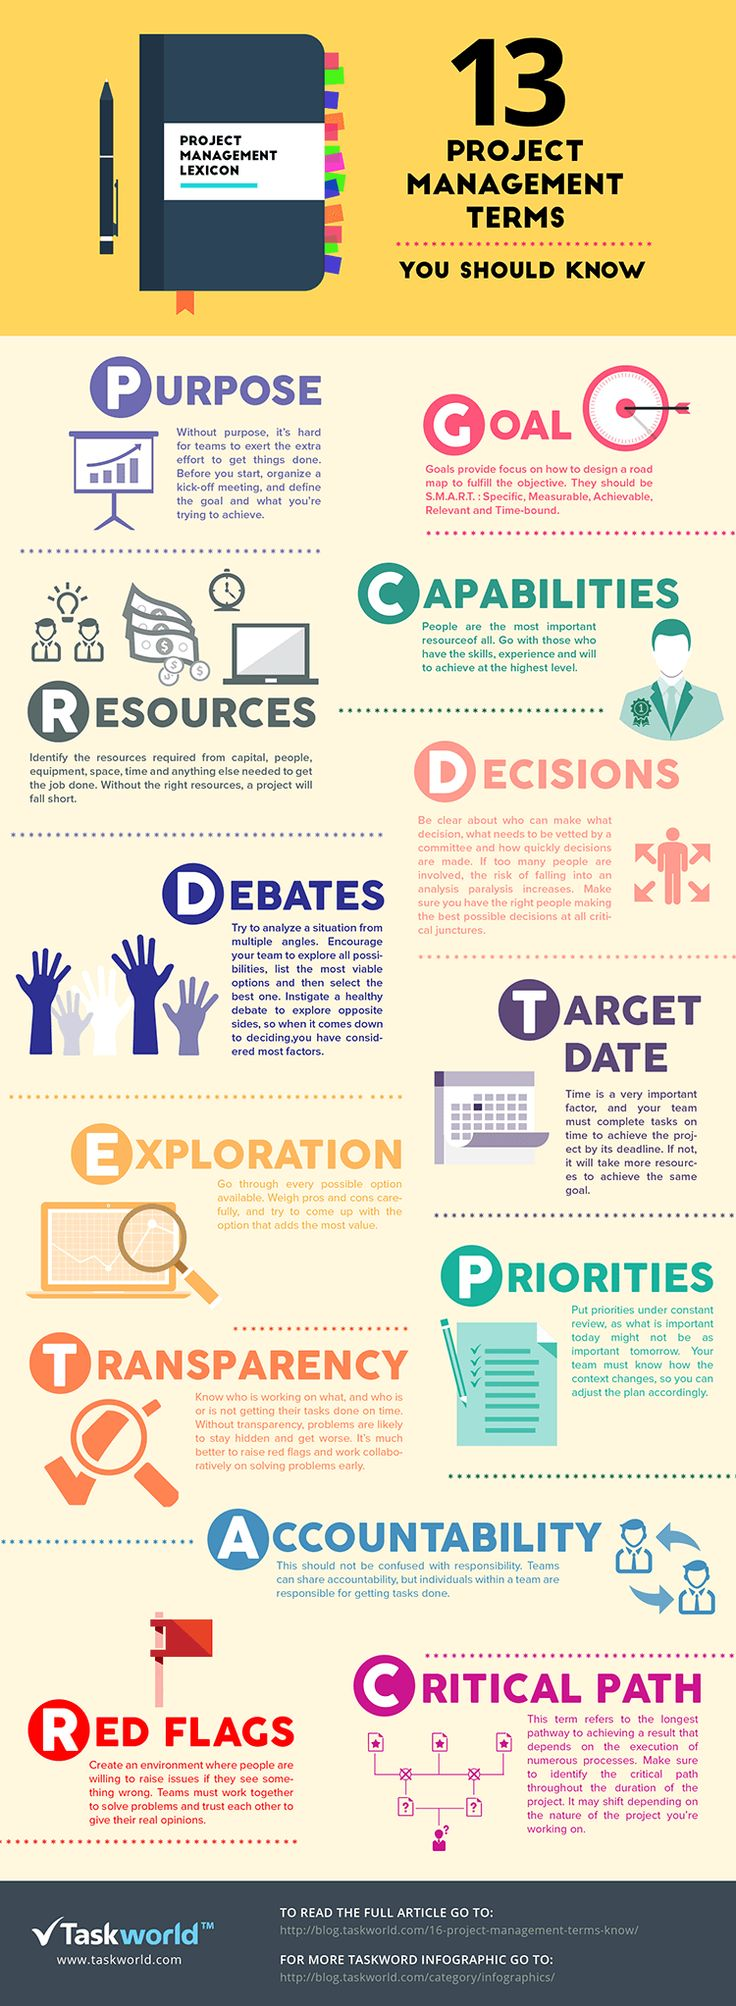 144 best project management software images on pinterest project 13 project management terms you should know infographic 1betcityfo Image collections